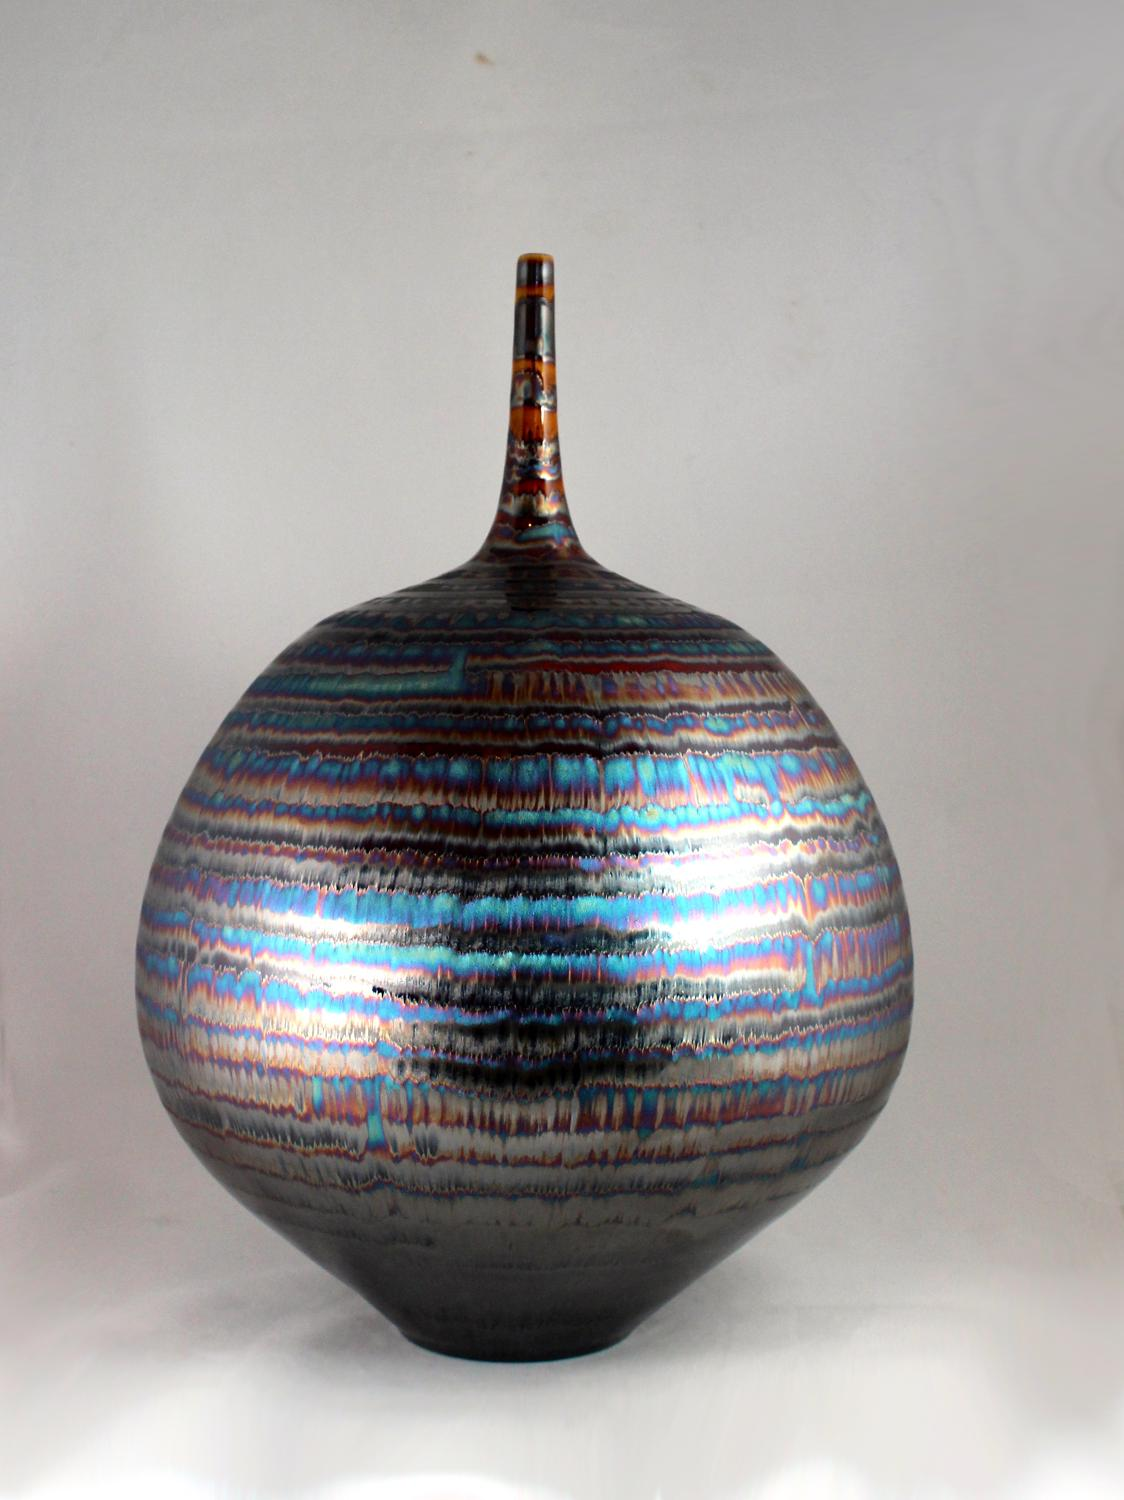 Hideaki Miyamura, Bottle with Blue and Gold Waves